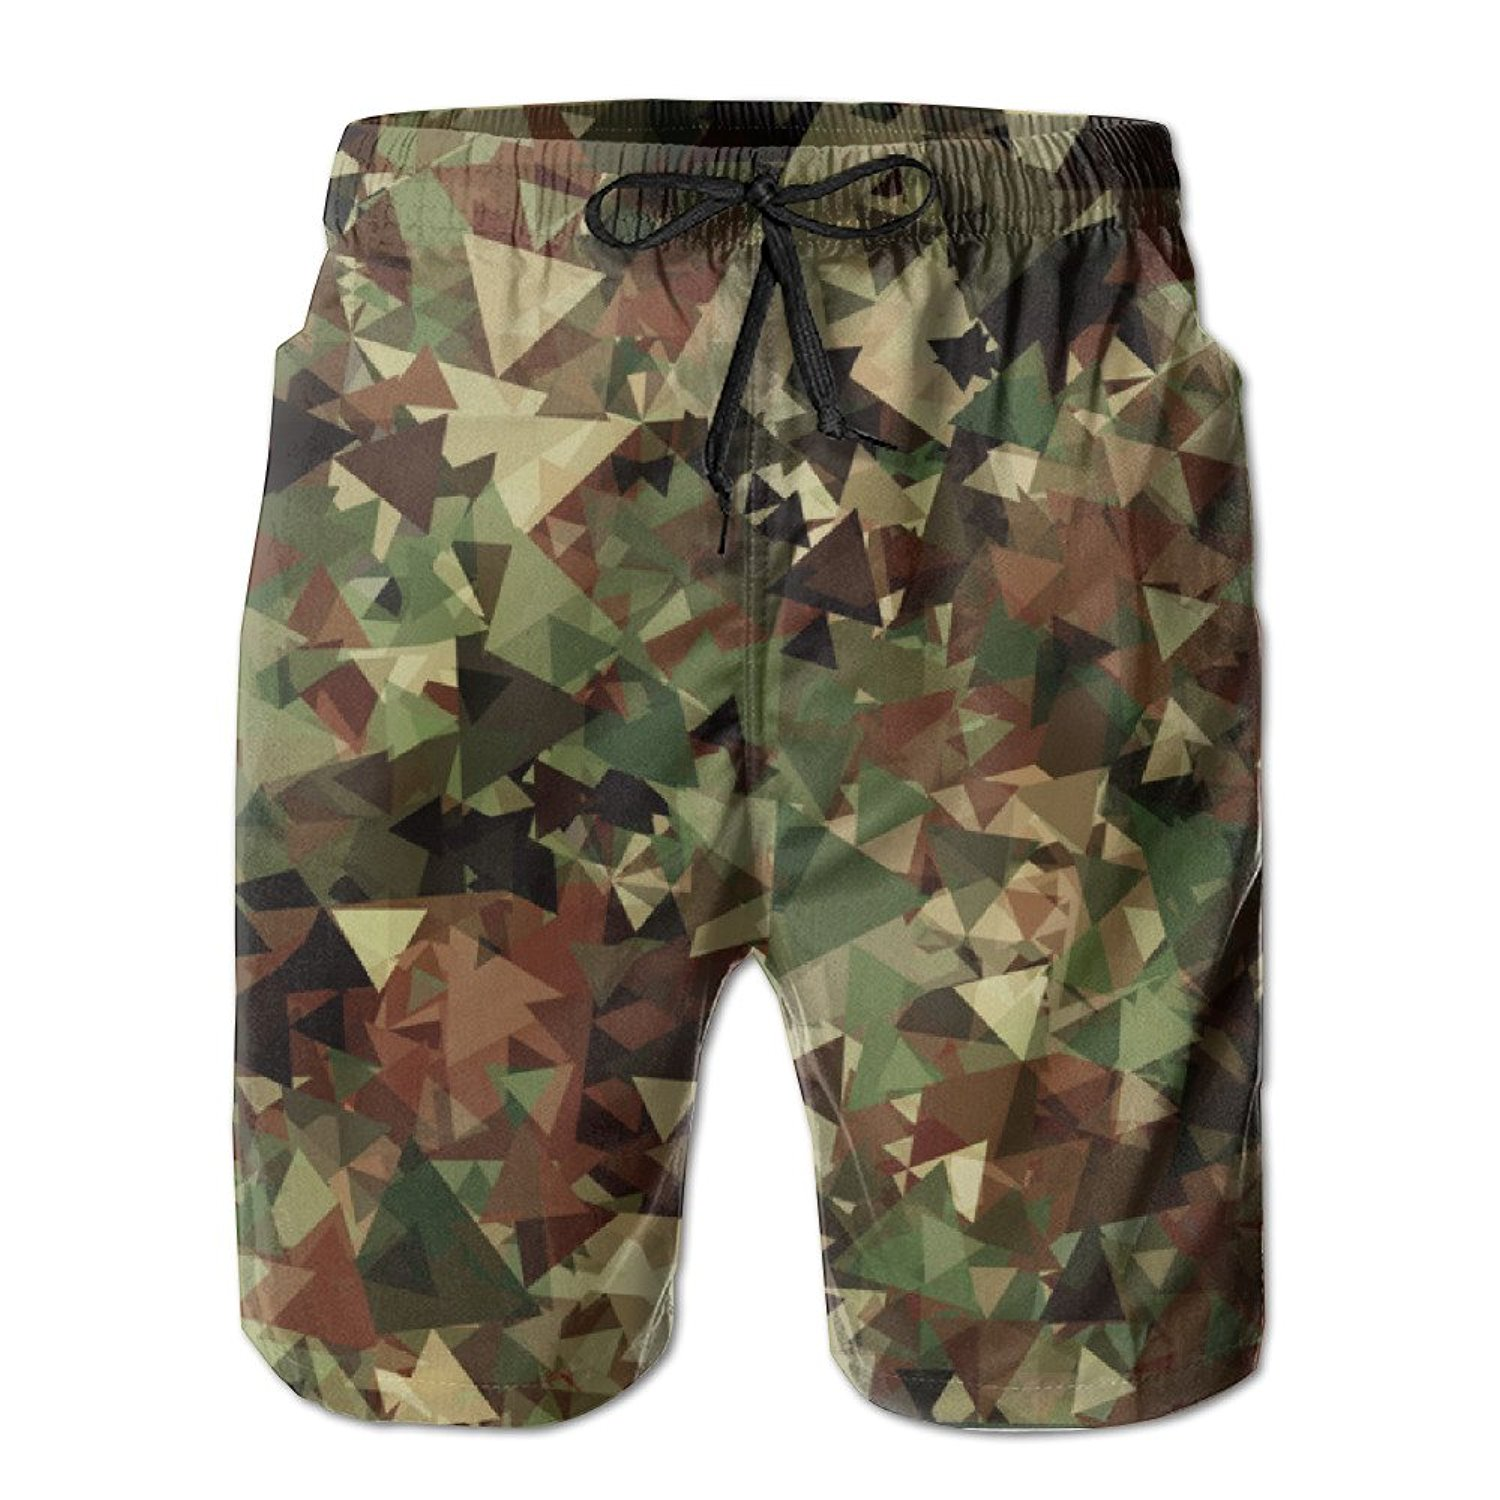 3bf519aa7747a Get Quotations · Camo Swim Trunks Summer Beach Board Shorts Quick Dry  Casual Shorts Boardshorts Swim Wear With Pockets